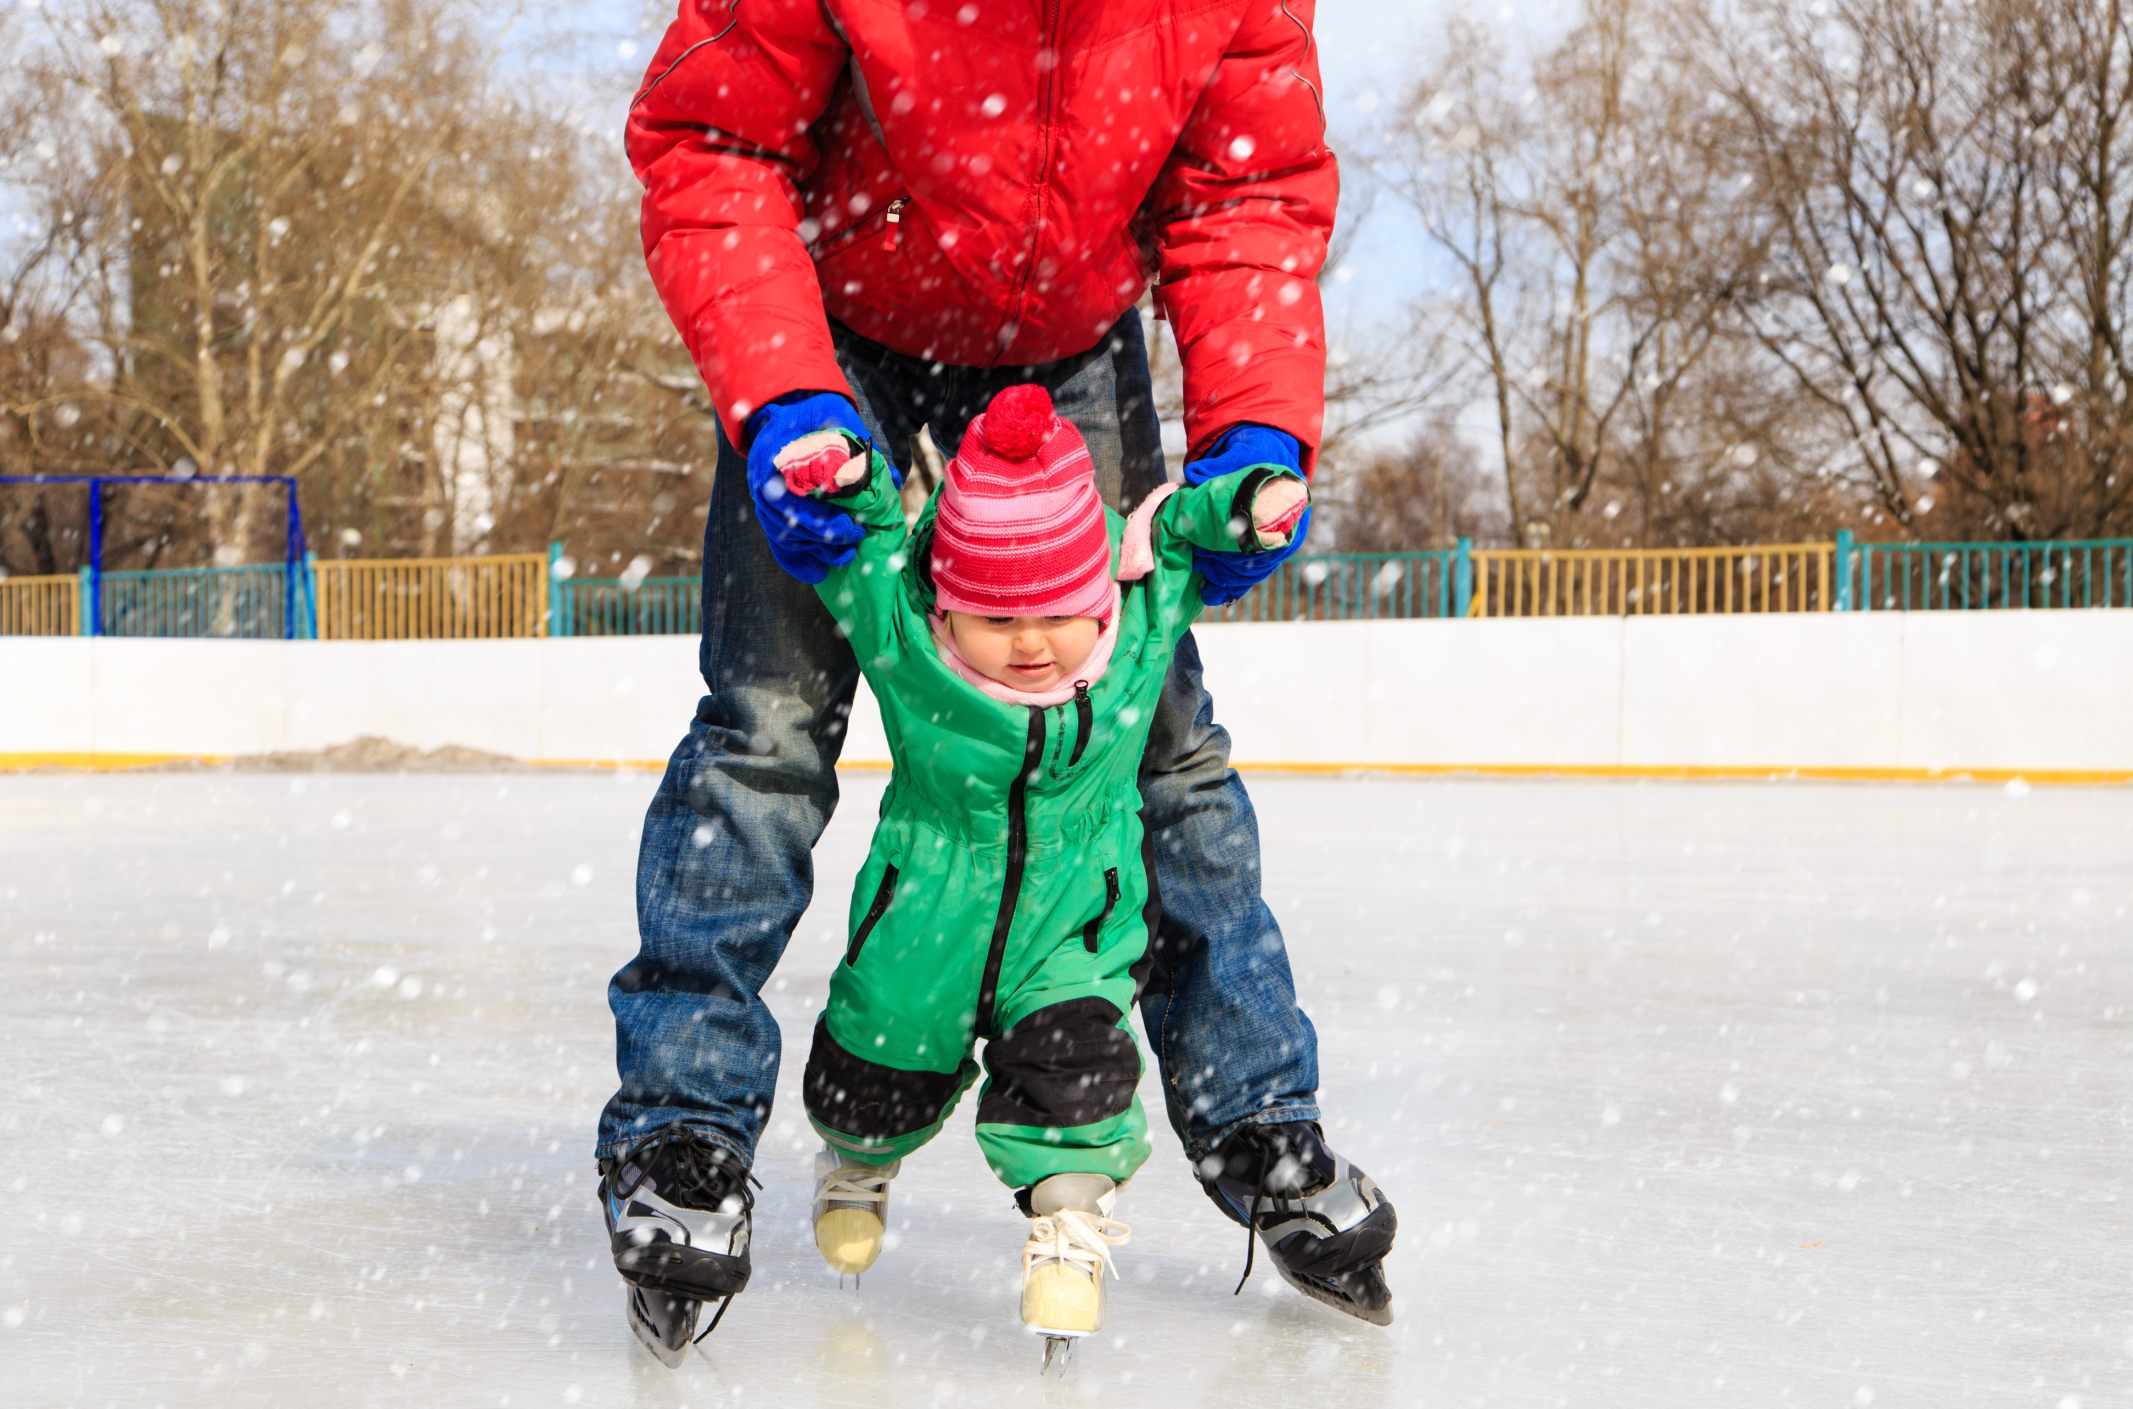 ThinkstockPhotos 490372624 10 Winter Photo Ideas That The Whole Family Can Enjoy